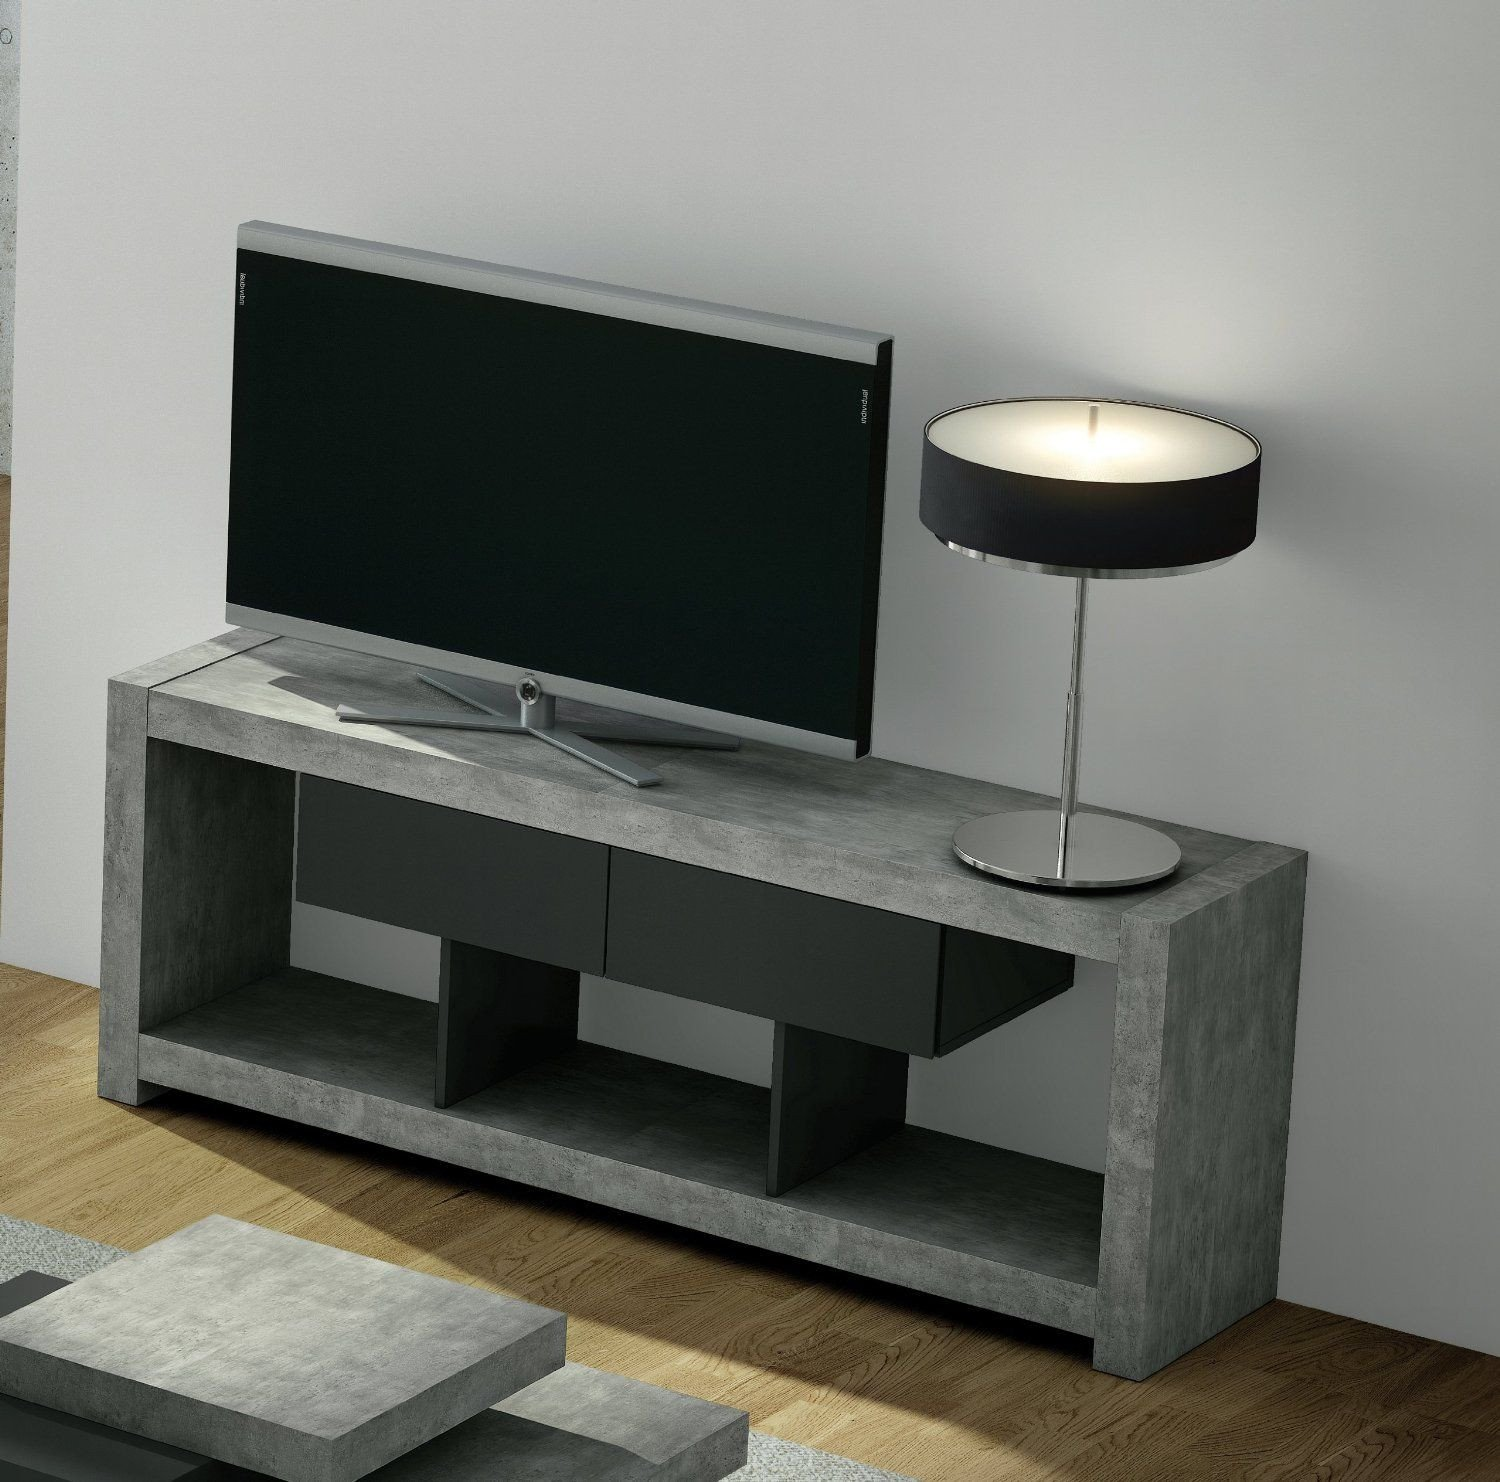 Small Tv Stand for Bedroom New Temahome Concrete Tv Stand